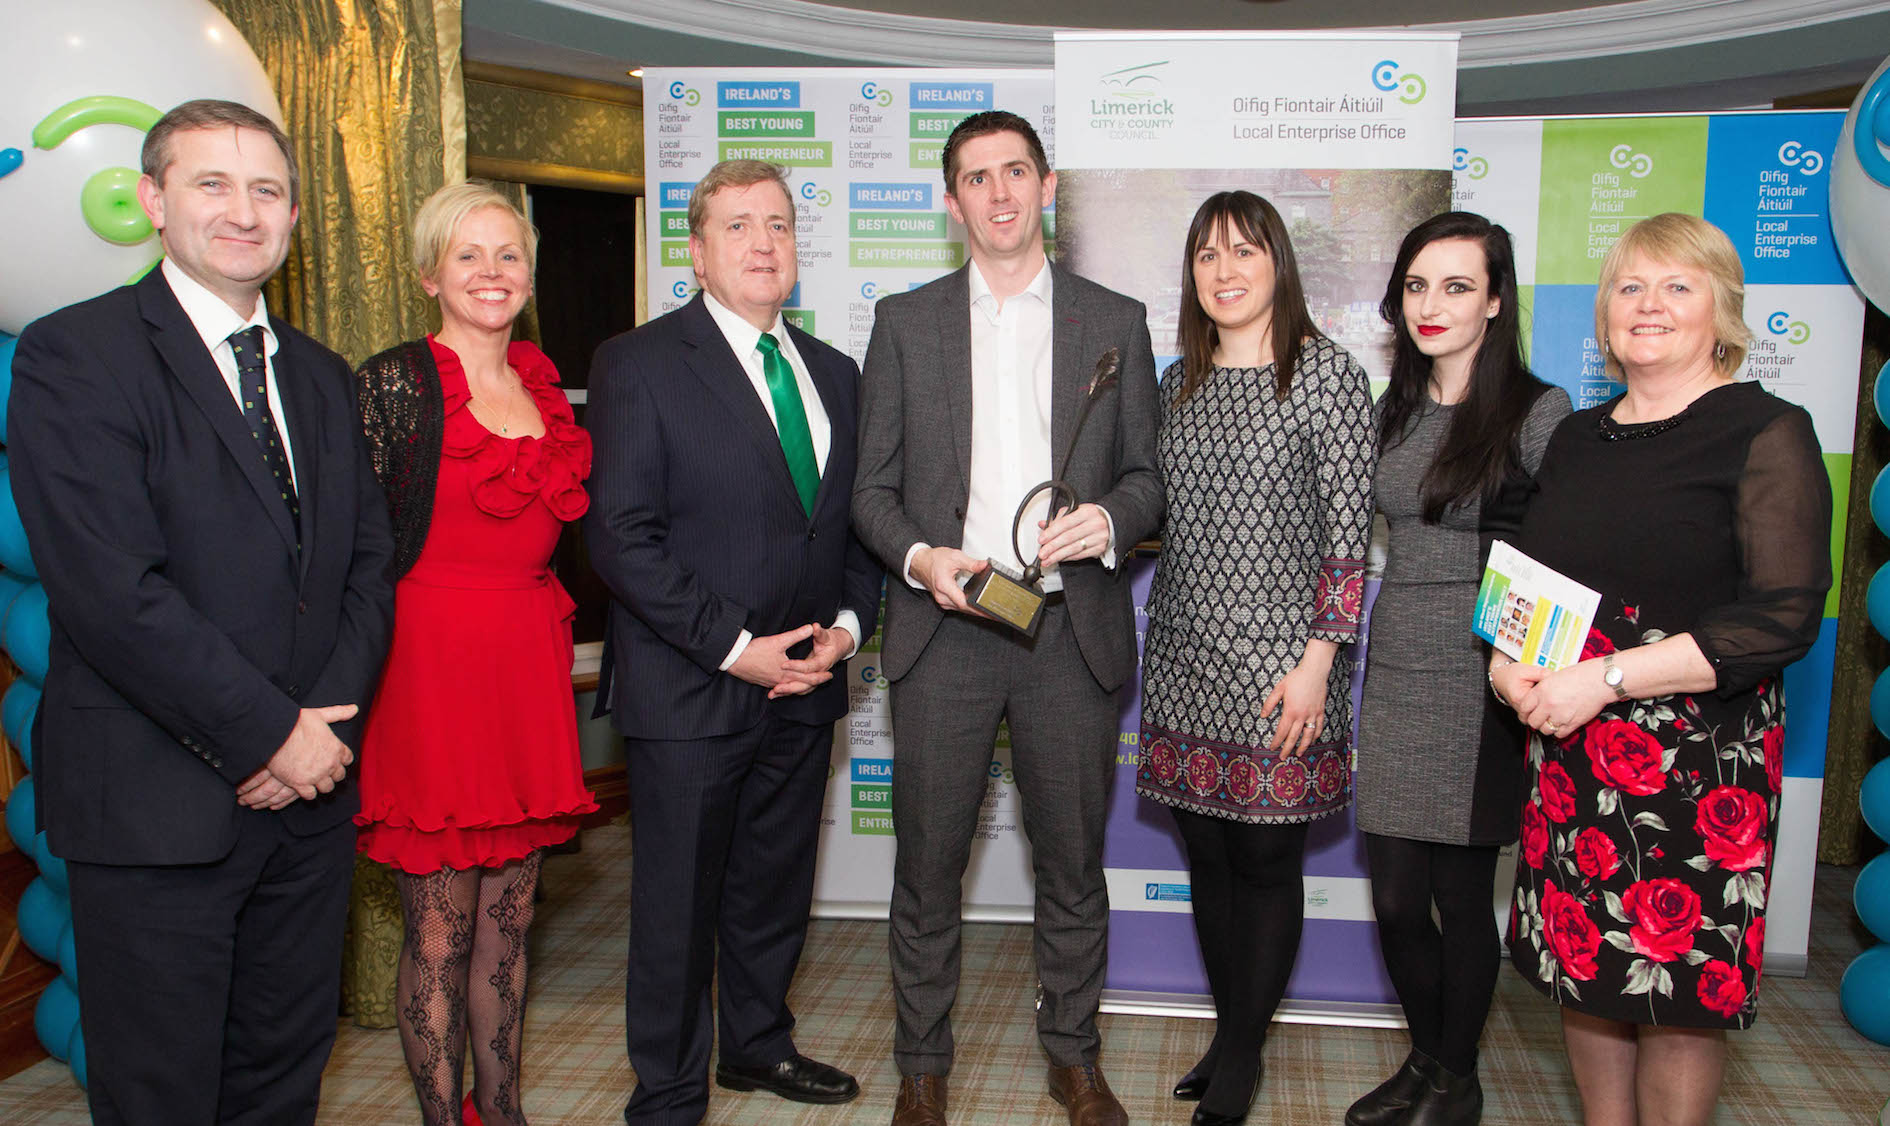 Irelands Best Young Entrepreneur National Final